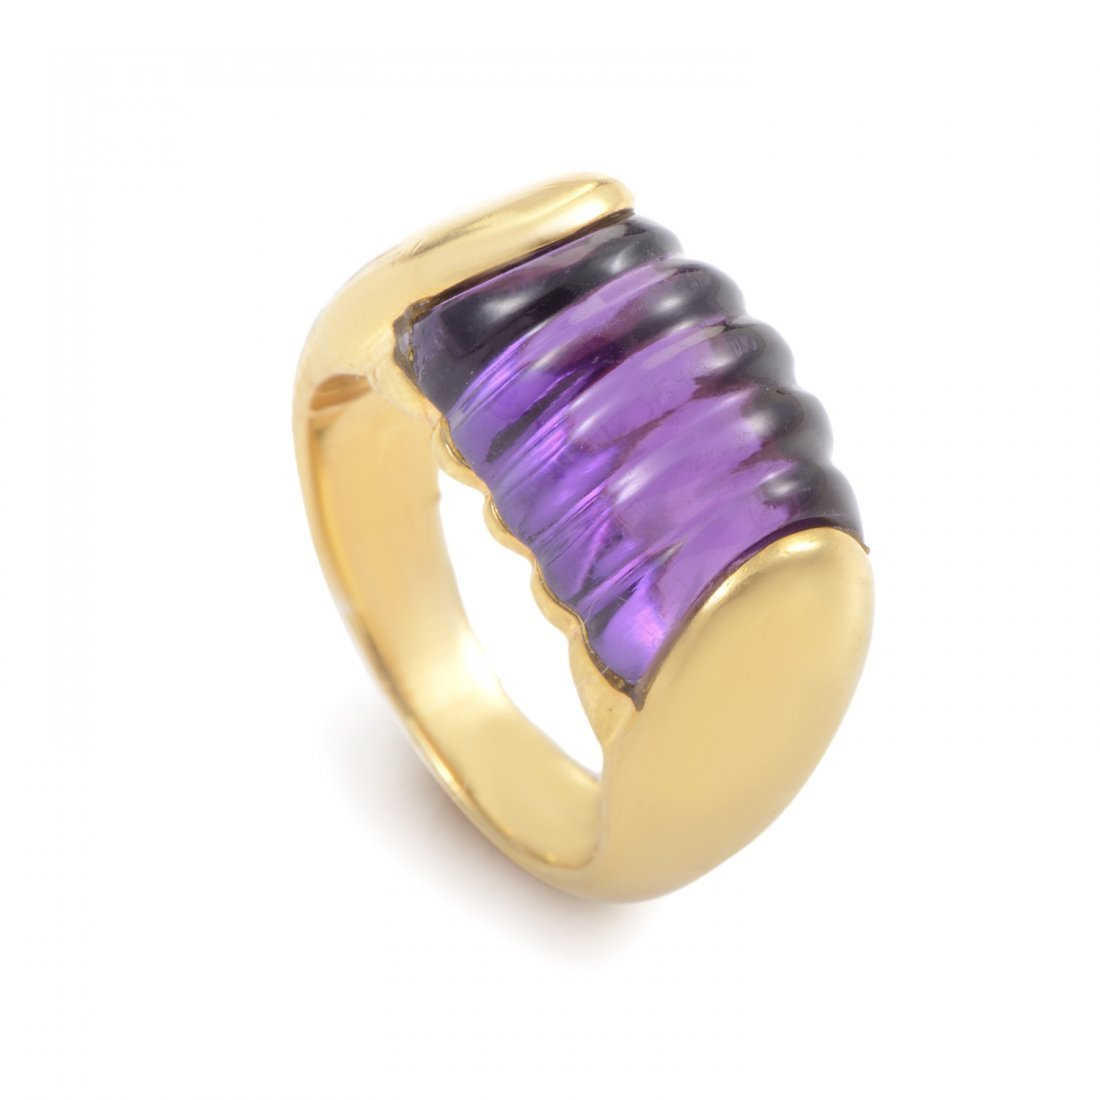 Bvlgari Tronchetto 18K Yellow Gold Amethyst Ring